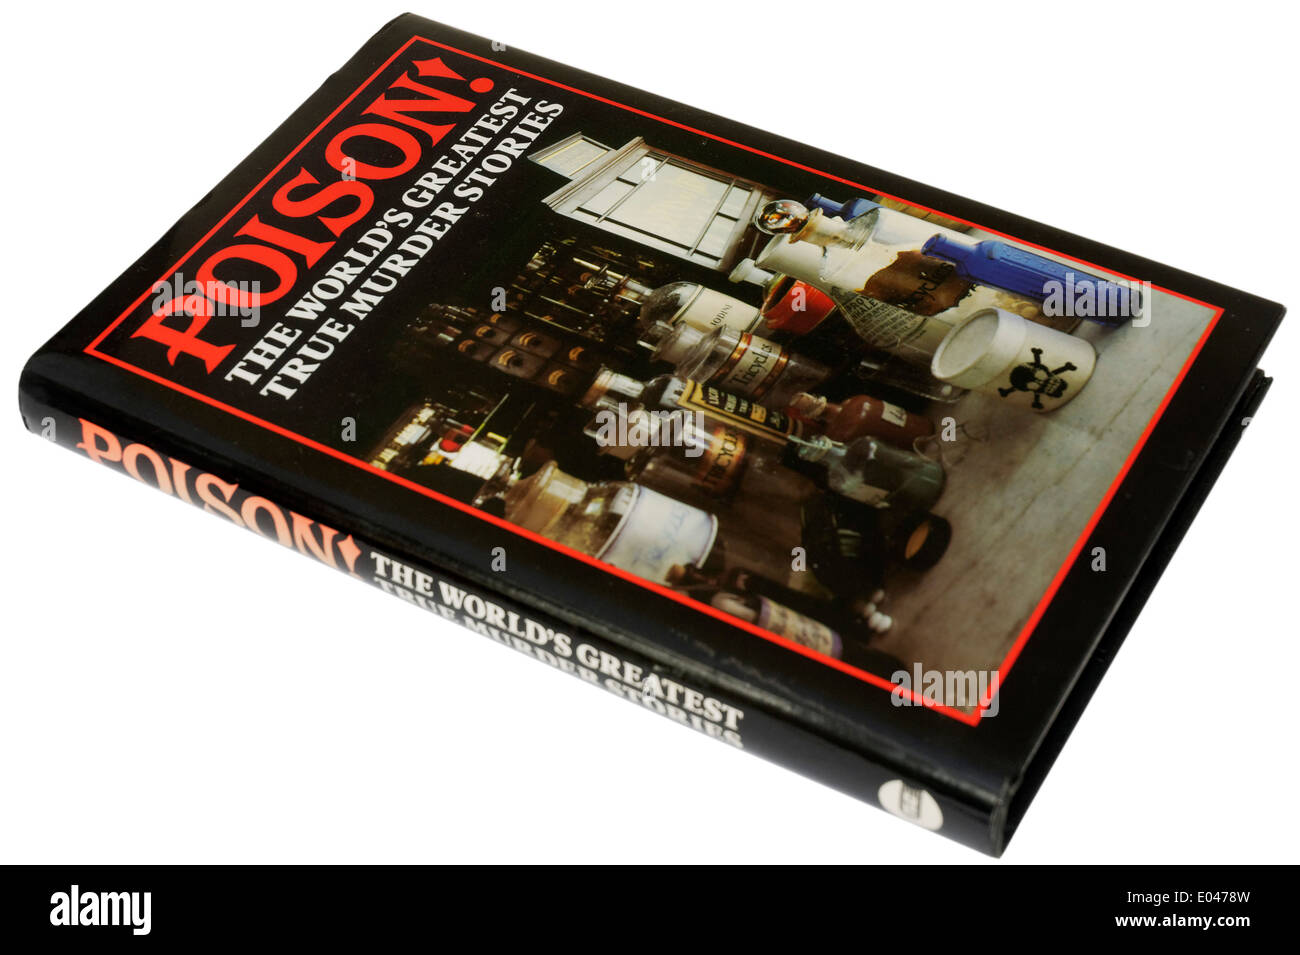 Poison, A book about famous poisoners - Stock Image